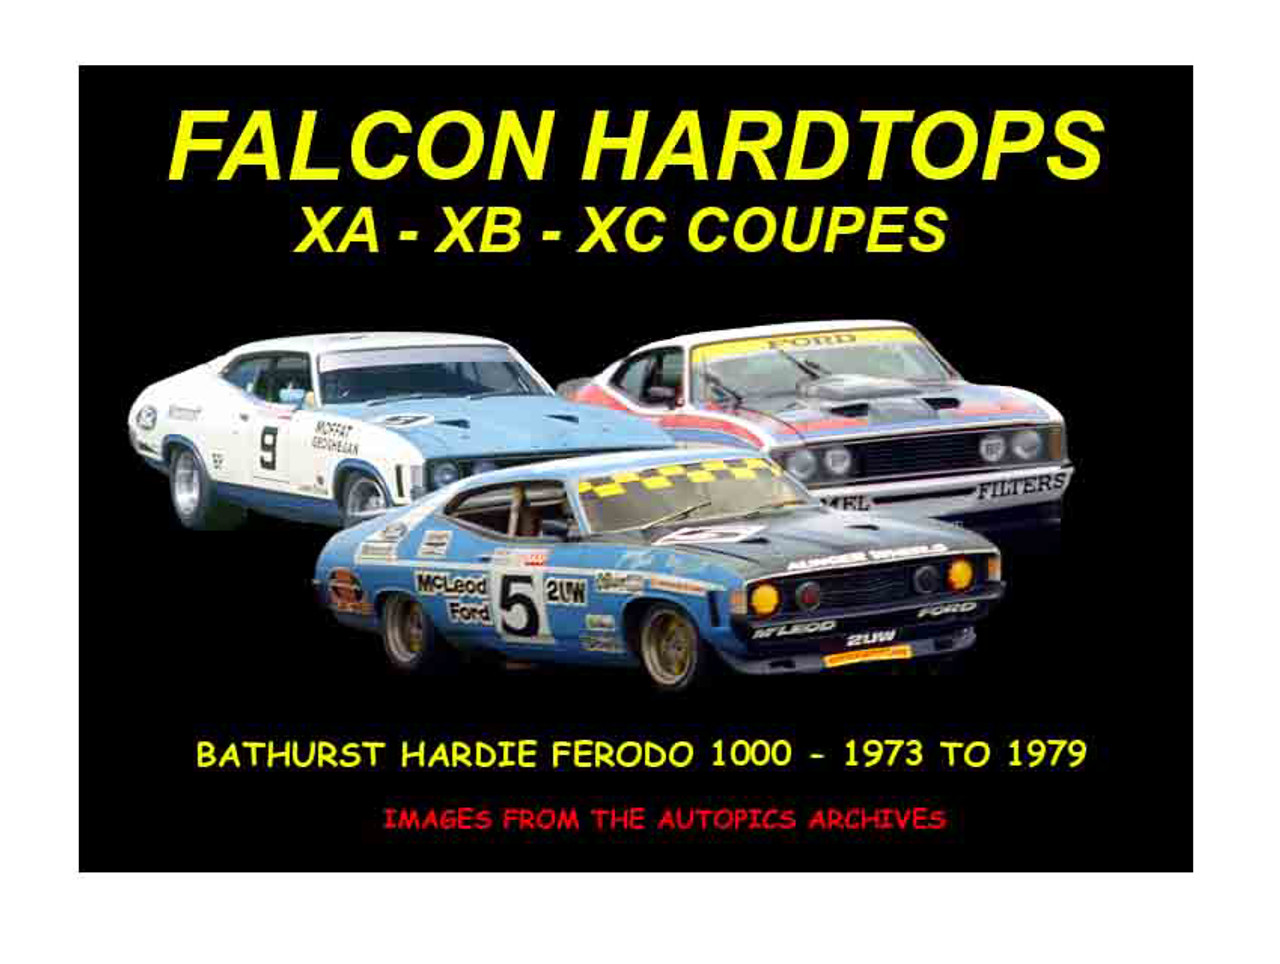 !Ford Hardtops - Bathurst '73 to '79 - 80 Page Hard Cover Book - Pictorial History